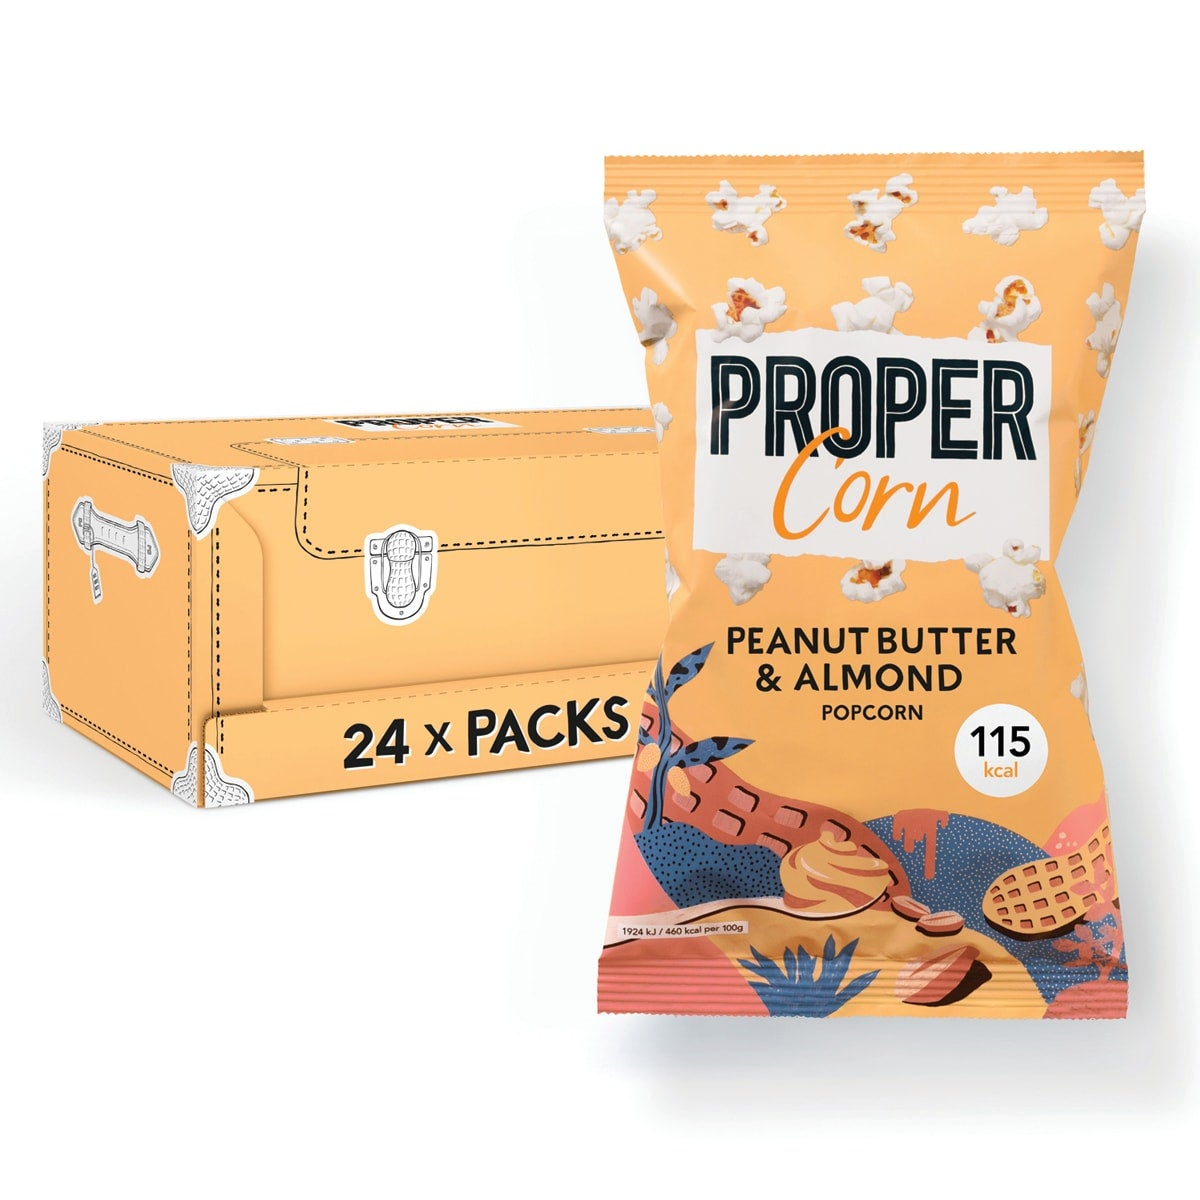 Box of 24, Propercorn Peanut Butter and Almond Popcorn, 25g bag, smooth blend of peanut and almond, 4 SmartPoints values per bag, gluten free, suitable for vegans